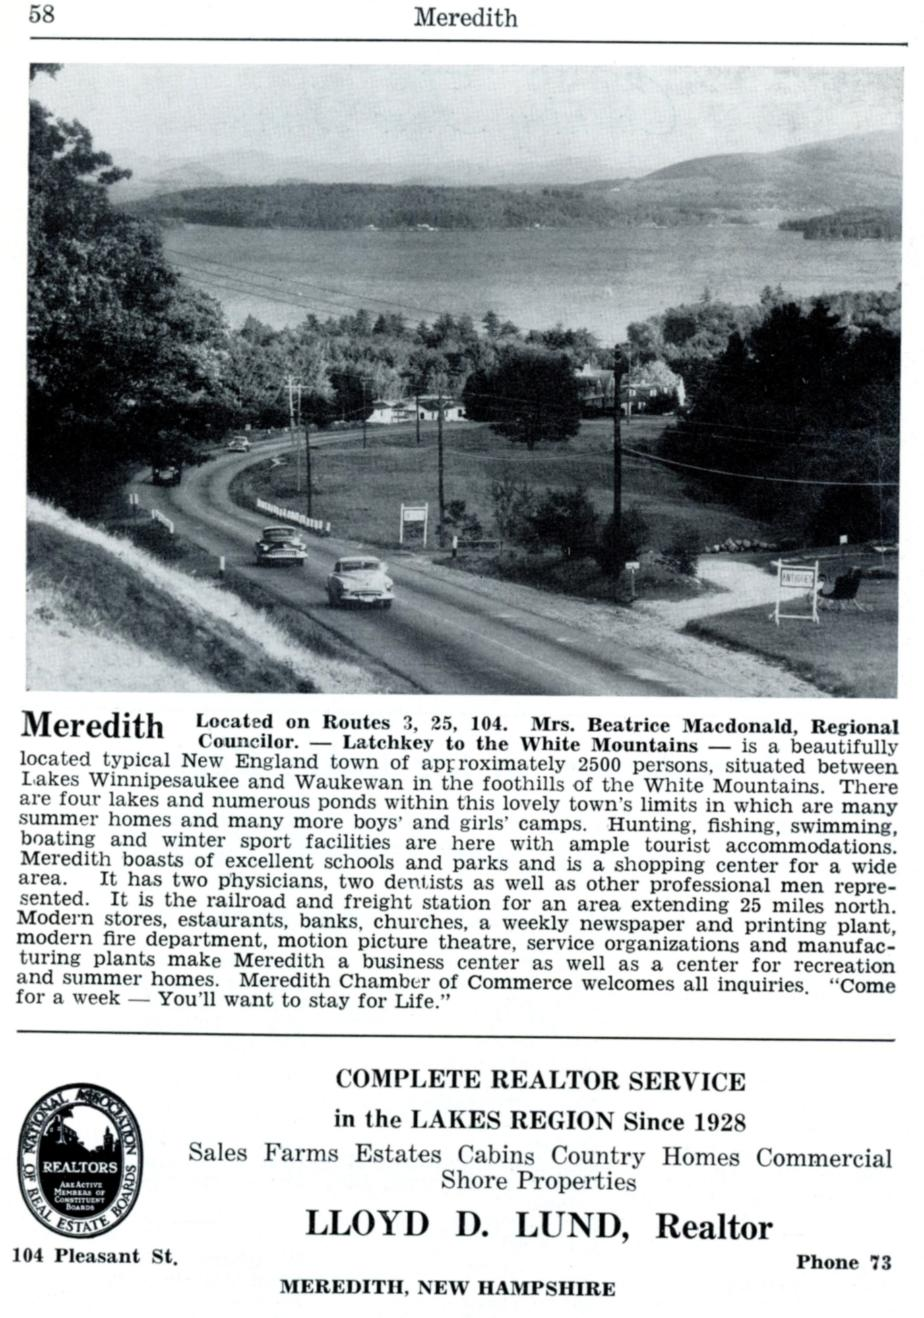 Meredith New Hampshire Travel Guide - 1953